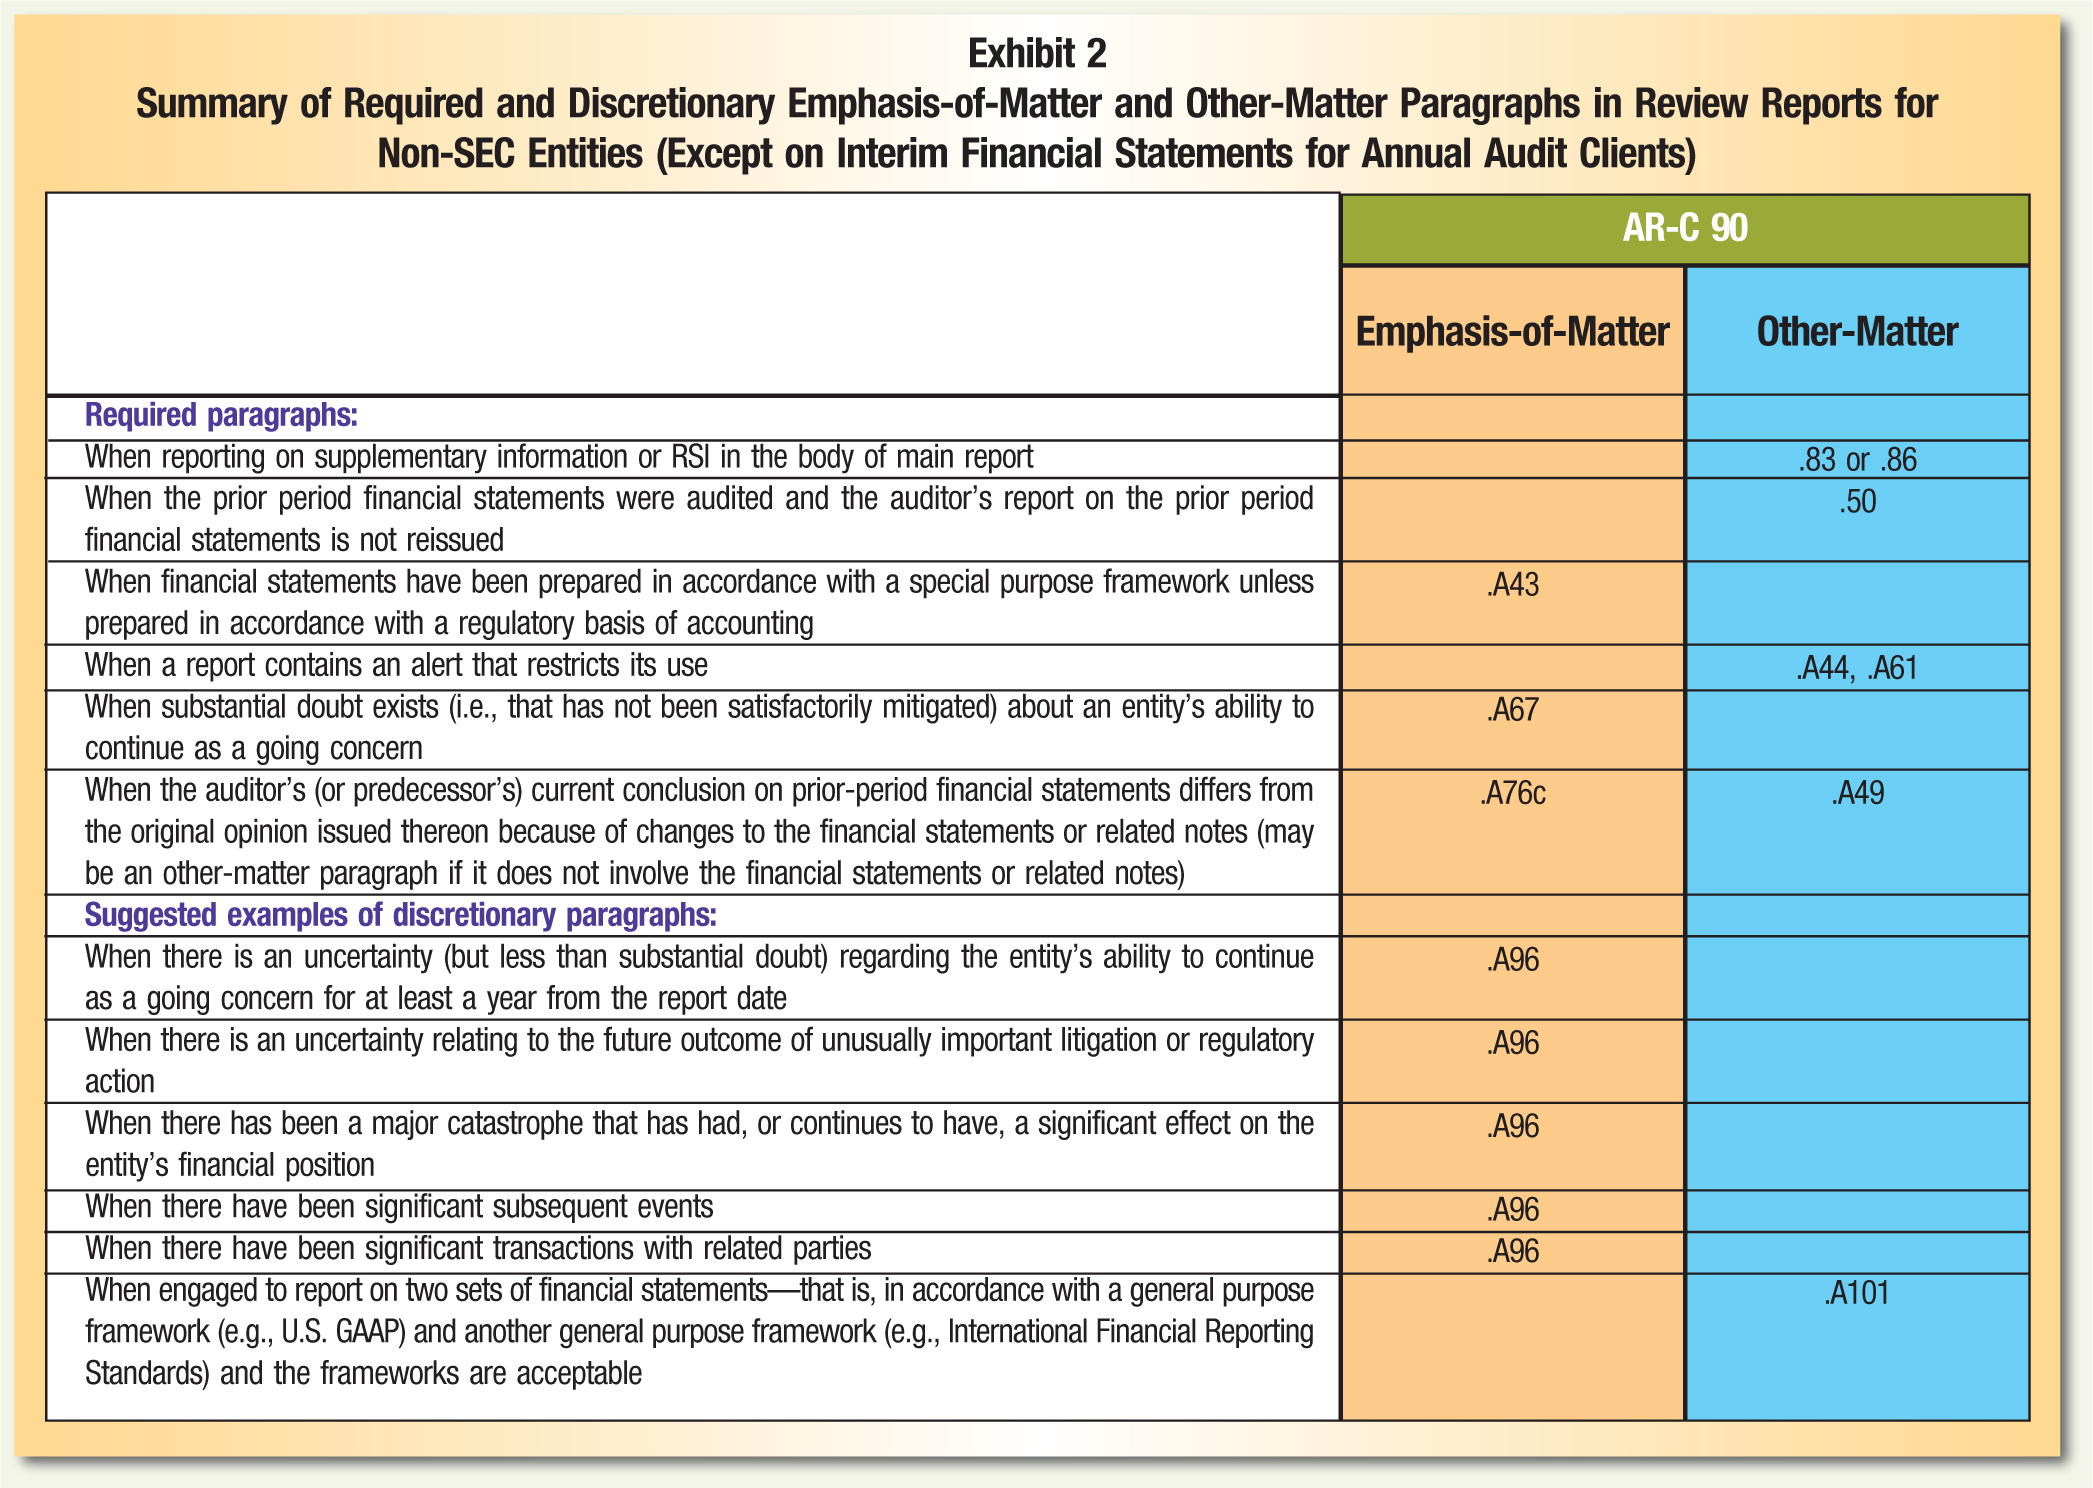 AR-C 90 Emphasis-of-Matter; Other-Matter Required paragraphs: When reporting on supplementary information or RSI in the body of main report; .83 or; .86 When the prior period financial statements were audited and the auditor's report on the prior period financial statements is not reissued; .50 When financial statements have been prepared in accordance with a special purpose framework unless prepared in accordance with a regulatory basis of accounting; .A43 When a report contains an alert that restricts its use; .A44,; .A61 When substantial doubt exists (i.e., that has not been satisfactorily mitigated) about an entity's ability to continue as a going concern; .A67 When the auditor's (or predecessor's) current conclusion on prior-period financial statements differs from the original opinion issued thereon because of changes to the financial statements or related notes (may be an other-matter paragraph if it does not involve the financial statements or related notes); .A76c; .A49 Suggested examples of discretionary paragraphs: When there is an uncertainty (but less than substantial doubt) regarding the entity's ability to continue as a going concern for at least a year from the report date; .A96 When there is an uncertainty relating to the future outcome of unusually important litigation or regulatory action; .A96 When there has been a major catastrophe that has had, or continues to have, a significant effect on the entity's financial position; .A96 When there have been significant subsequent events; .A96 When there have been significant transactions with related parties; .A96 When engaged to report on two sets of financial statements—that is, in accordance with a general purpose framework (e.g., U.S. GAAP) and another general purpose framework (e.g., International Financial Reporting Standards) and the frameworks are acceptable; .A101